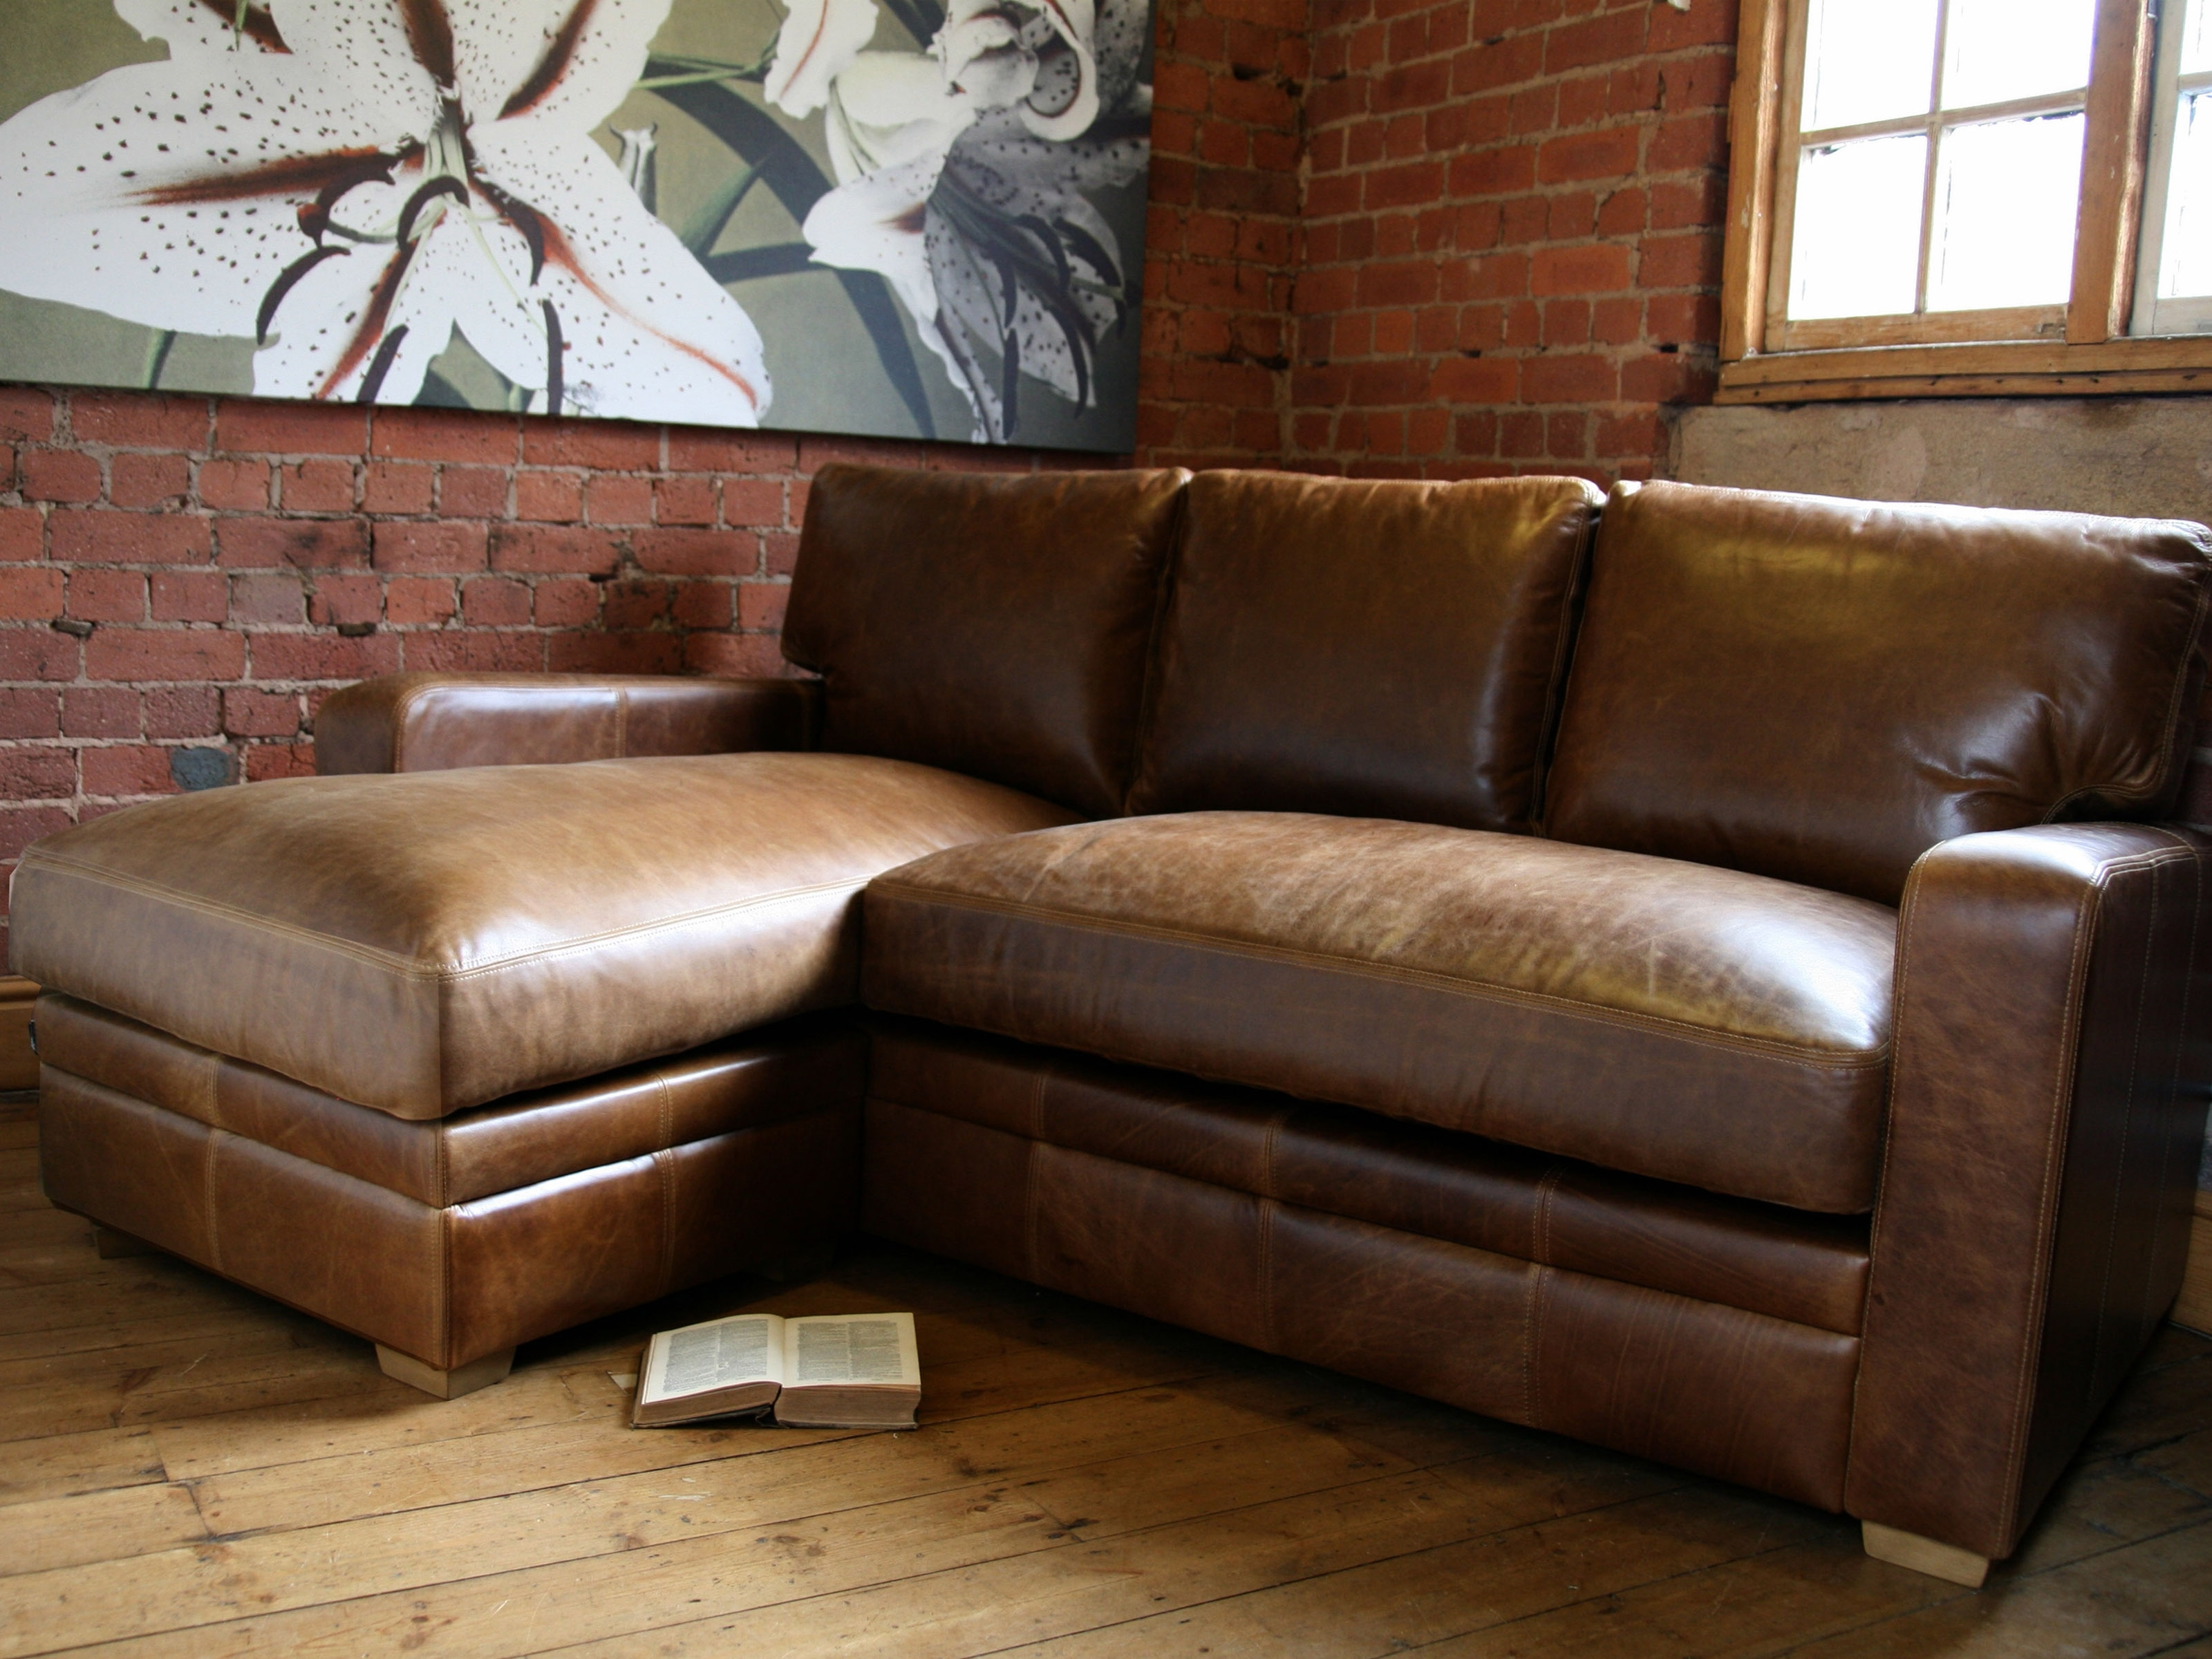 Sofa : Armchair Chaise Lounge Elegant Sofa Graceful Leather Chaise For Widely Used Leather Lounge Sofas (View 2 of 20)